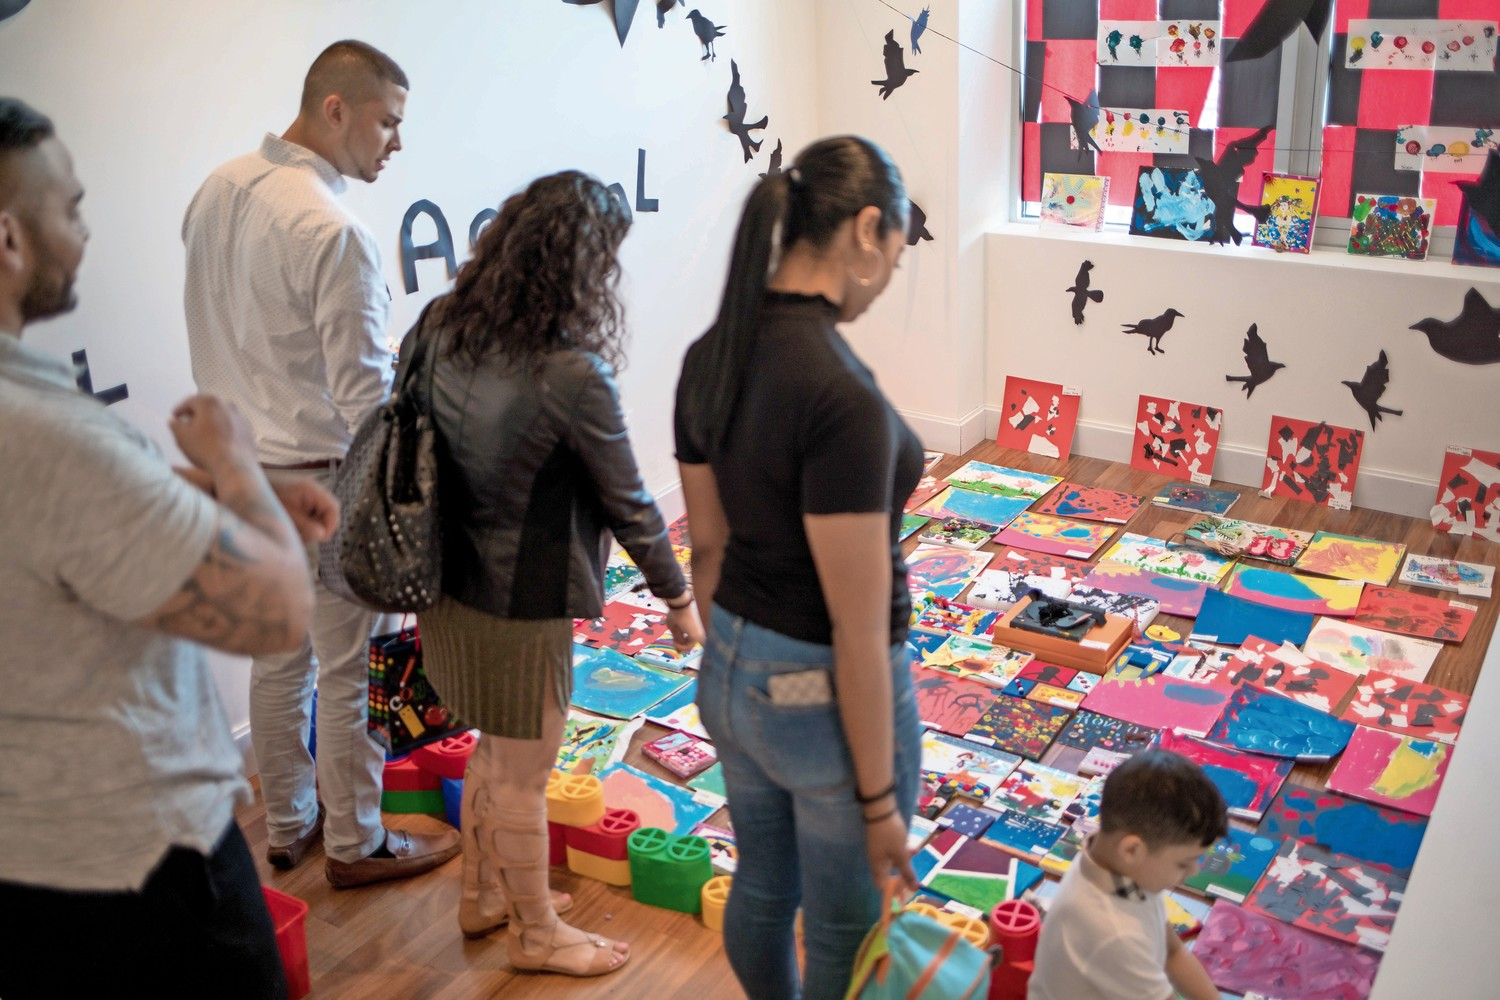 Families of students at Bedrock Preschool look at art in one of the rooms for the school's annual art gala.